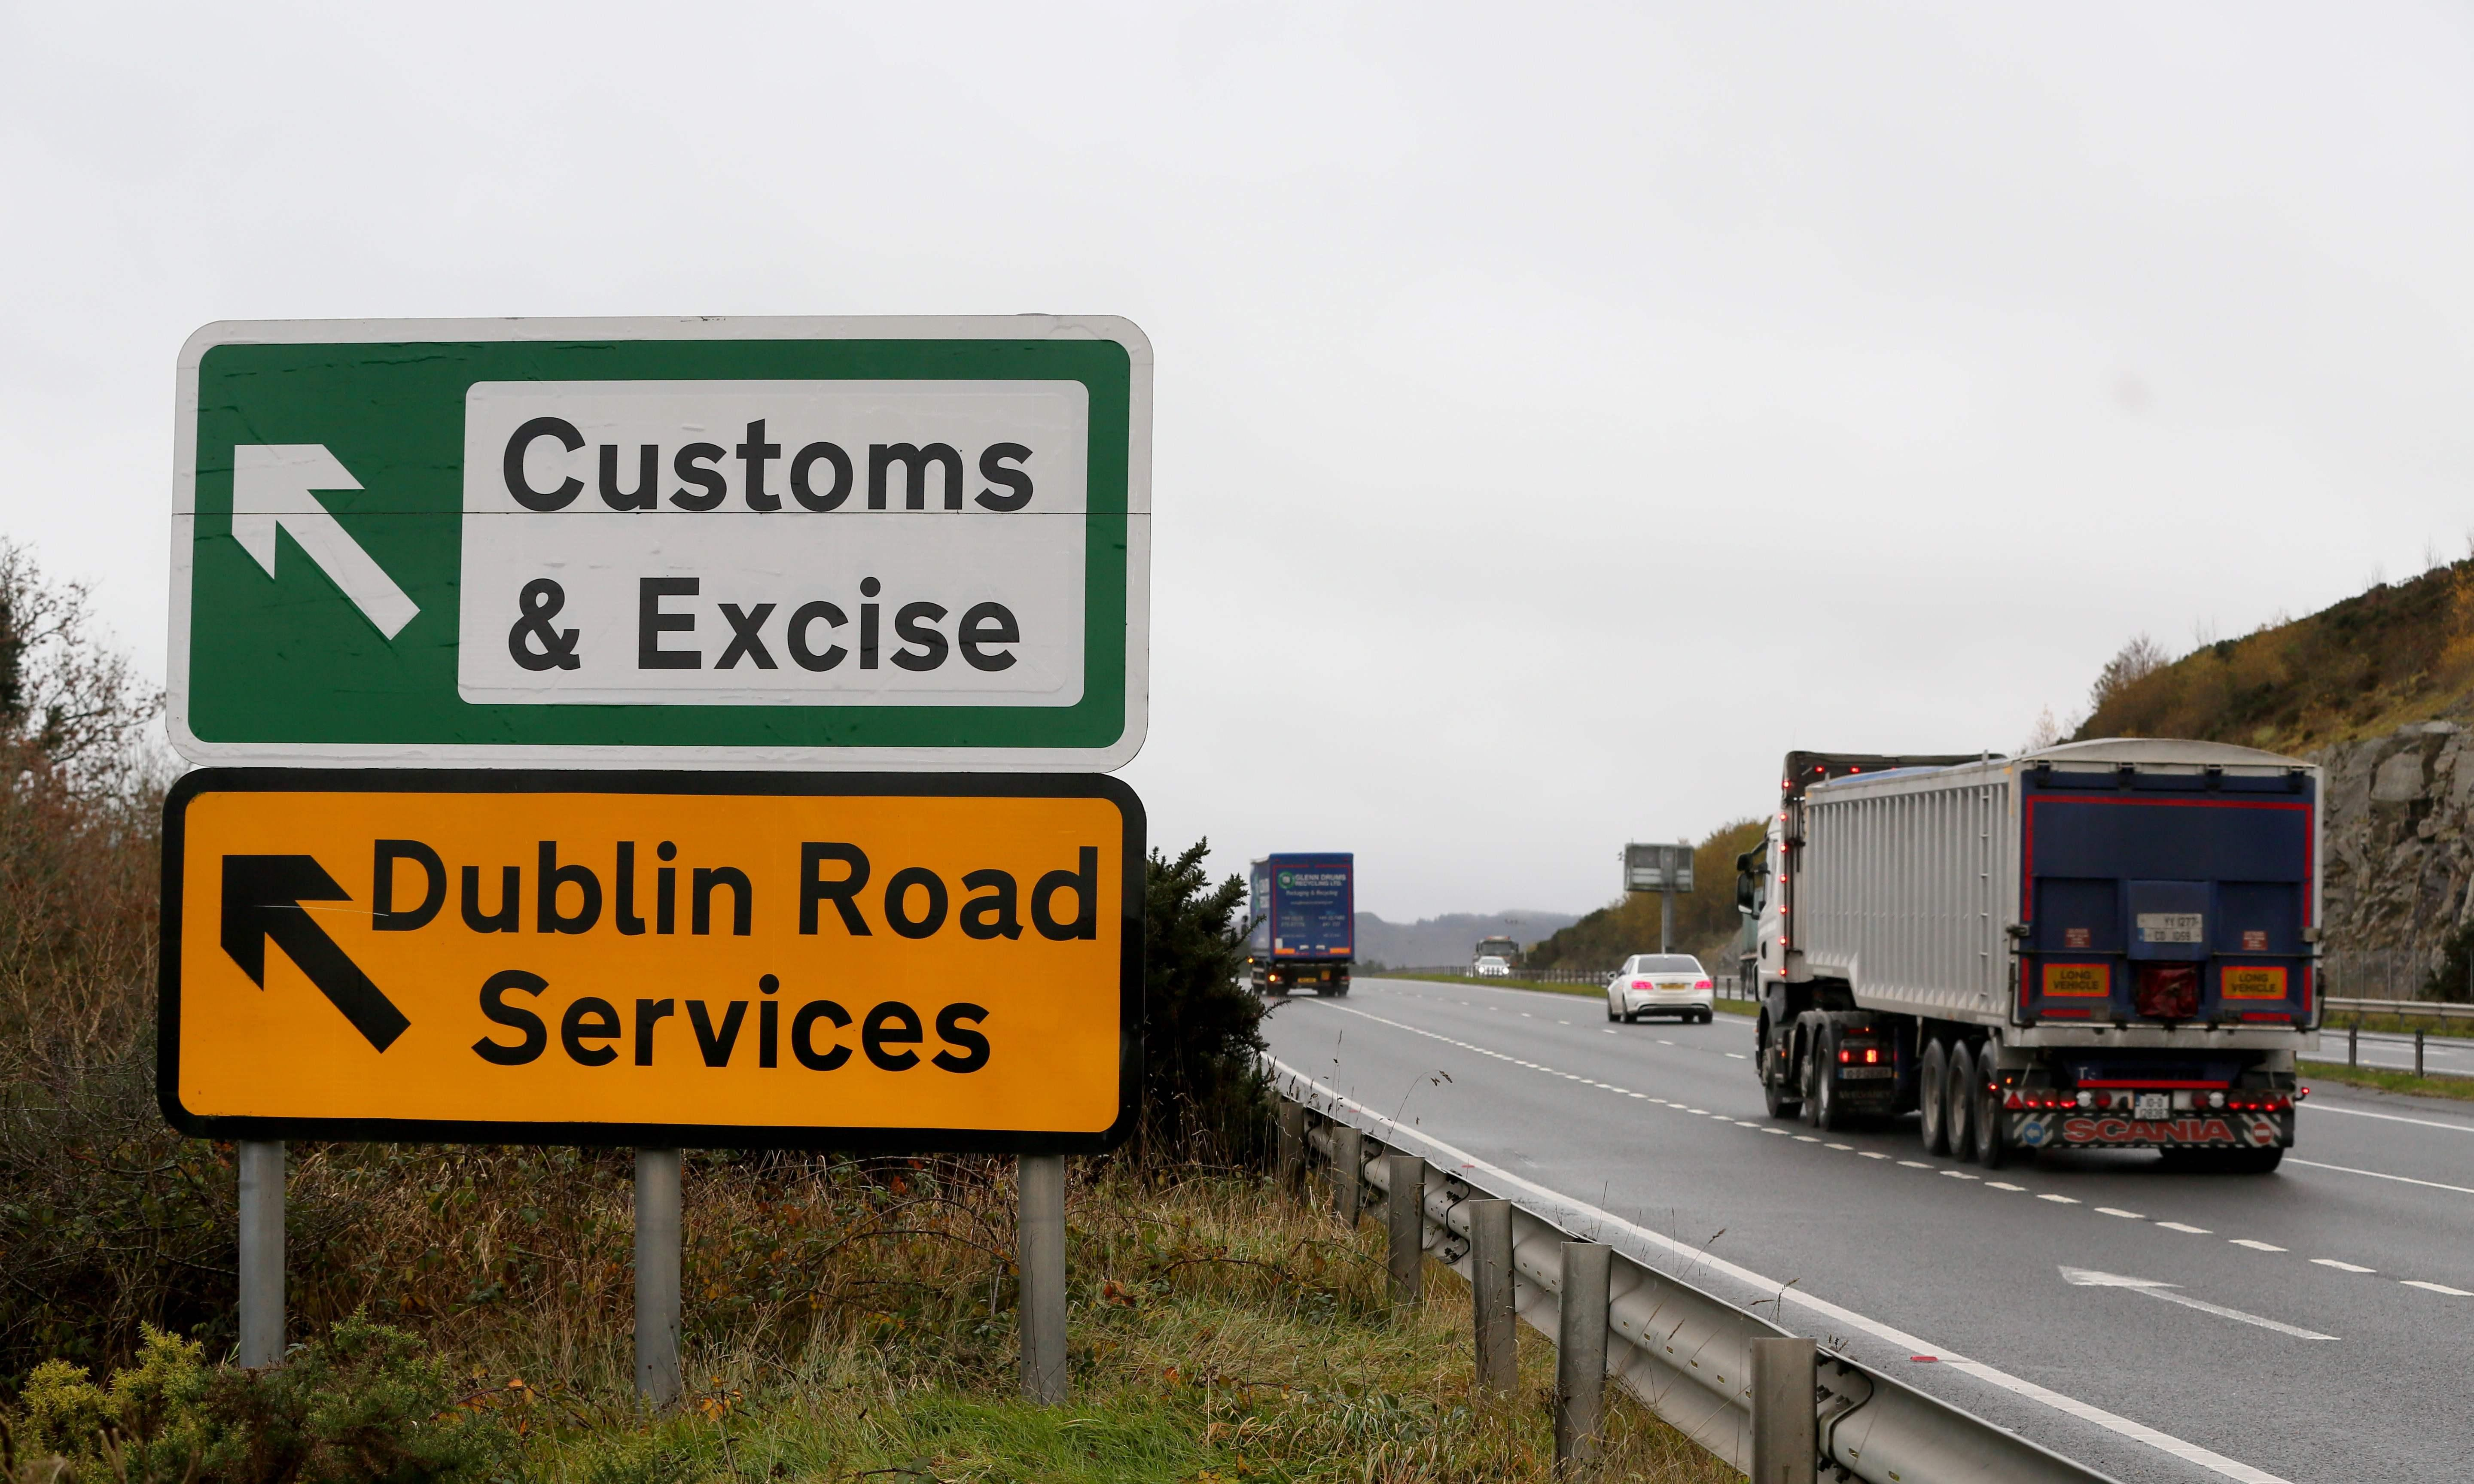 'One last chance': why Irish border question remains sticking point